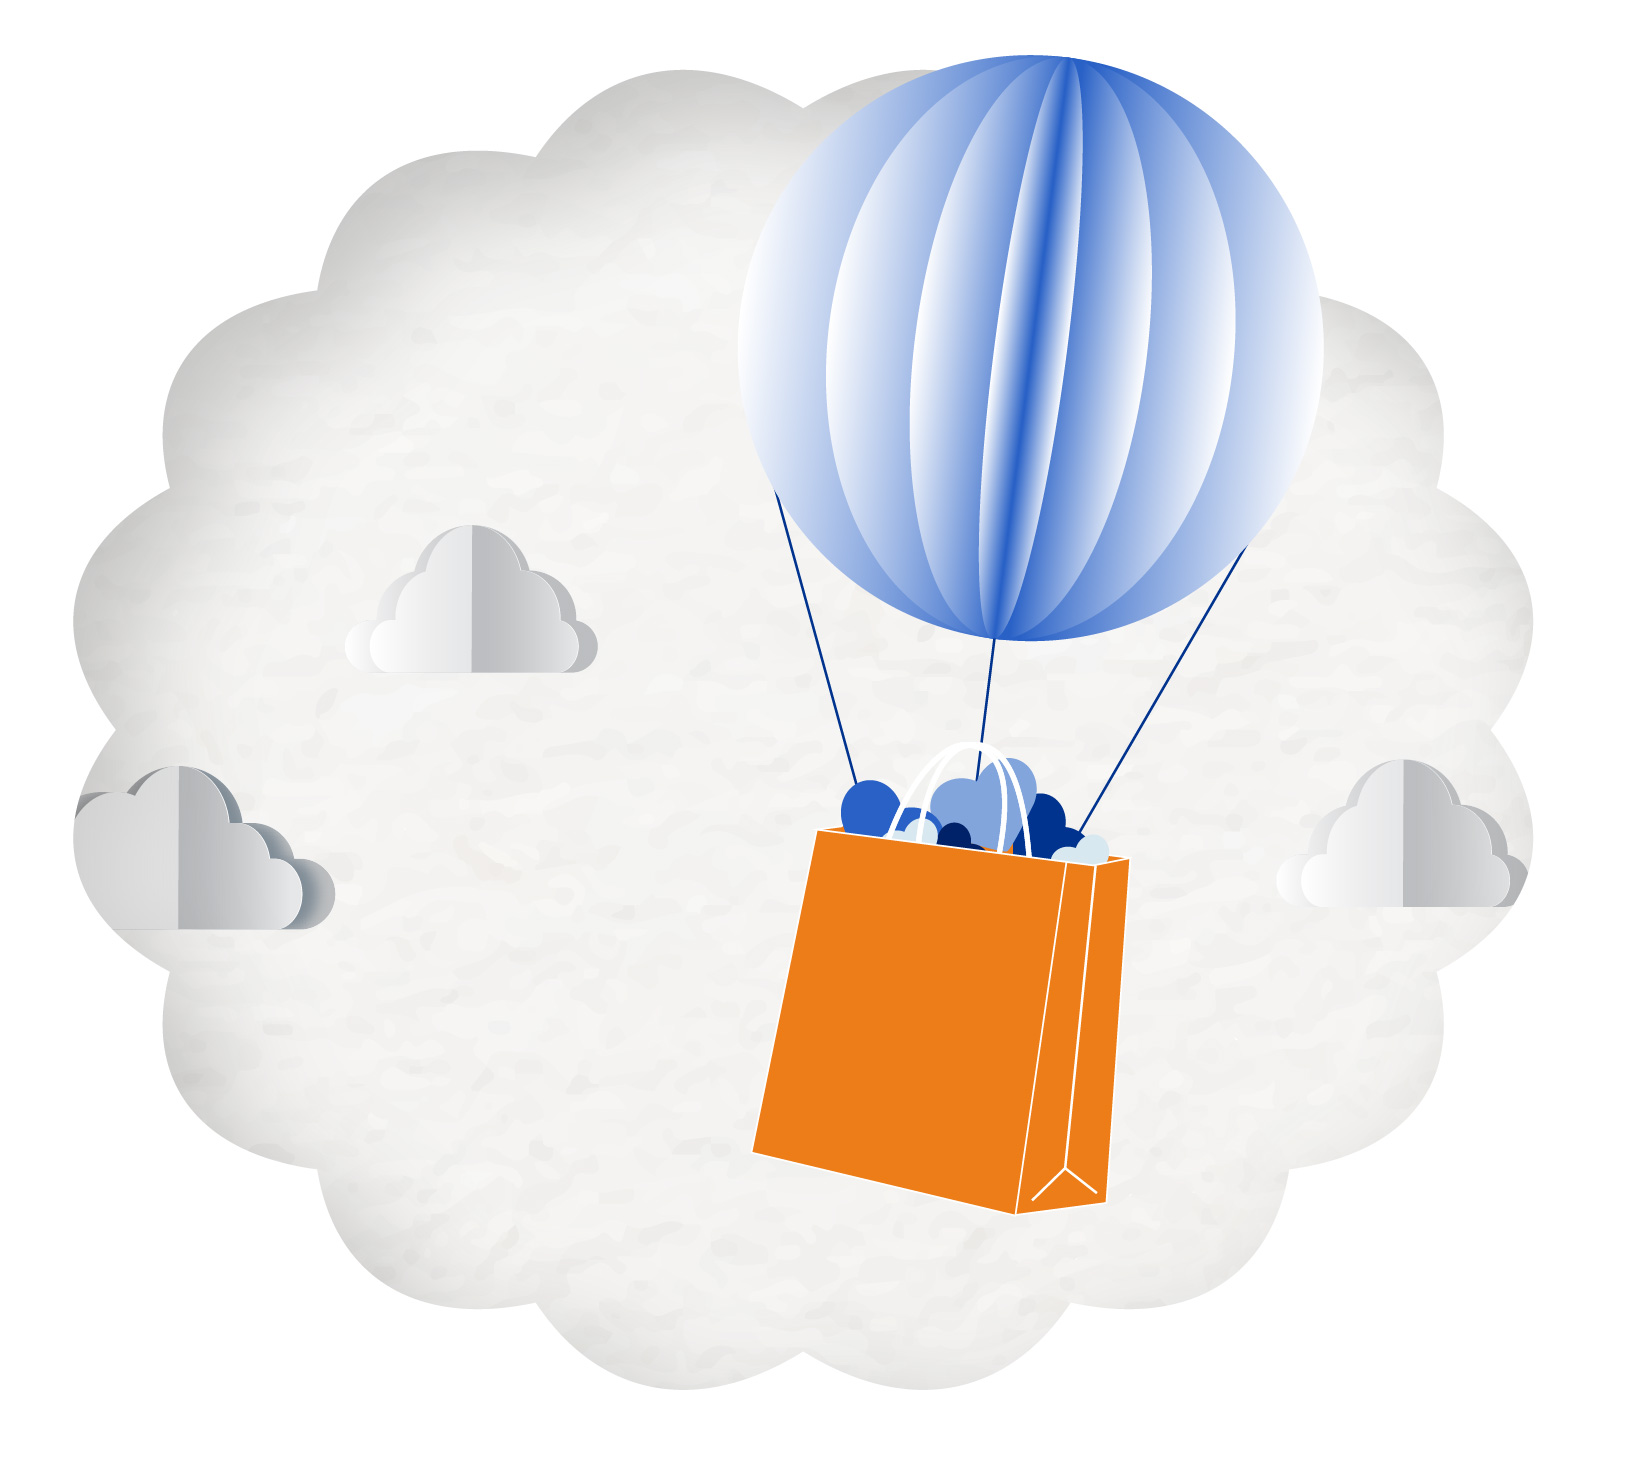 Shopping bag floating with balloons